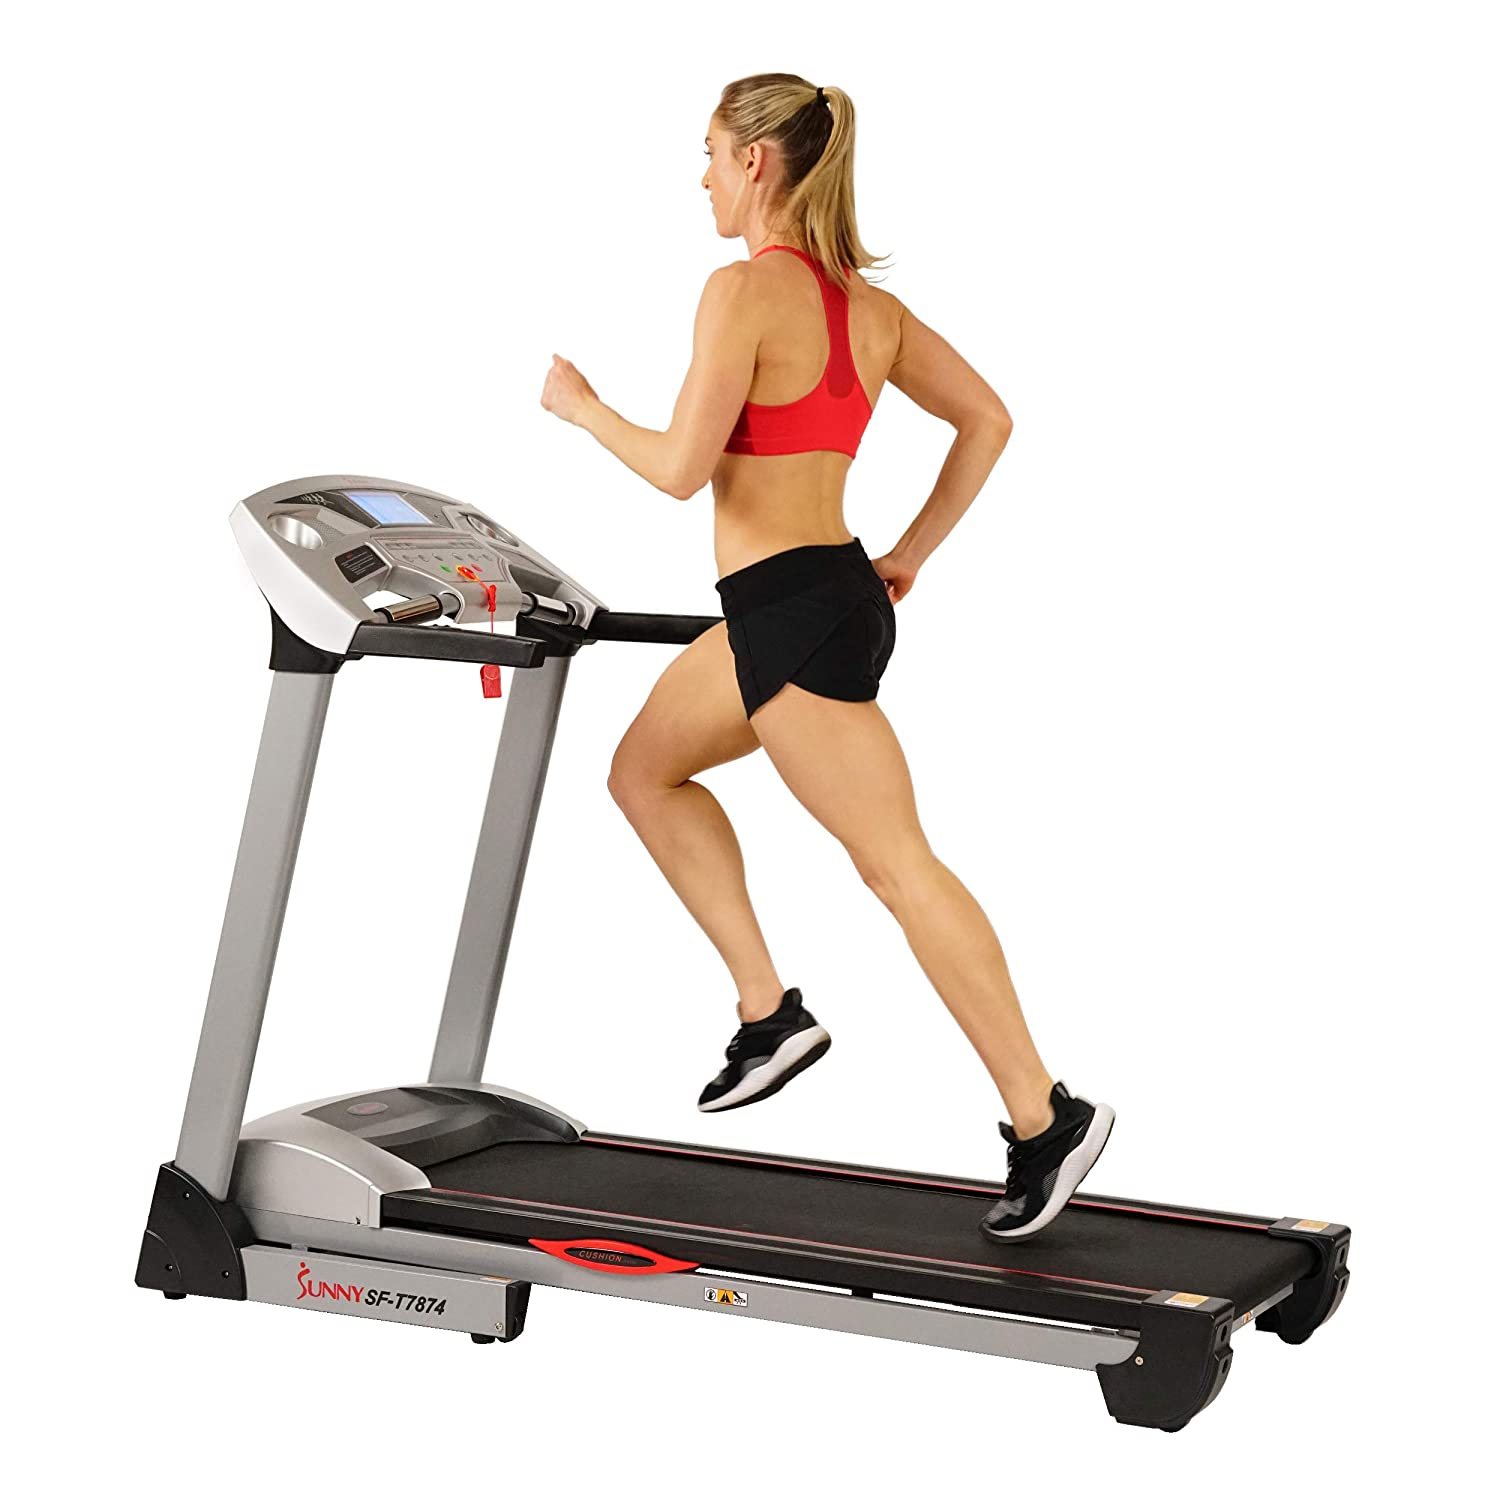 Sunny Health & Fitness Electric Treadmill with 11 MPH Max Speed, Integrated Speakers, Body Fat Calculator, USB Ports, Auto Incline, Pulse Monitor and 285 LB Max Weight